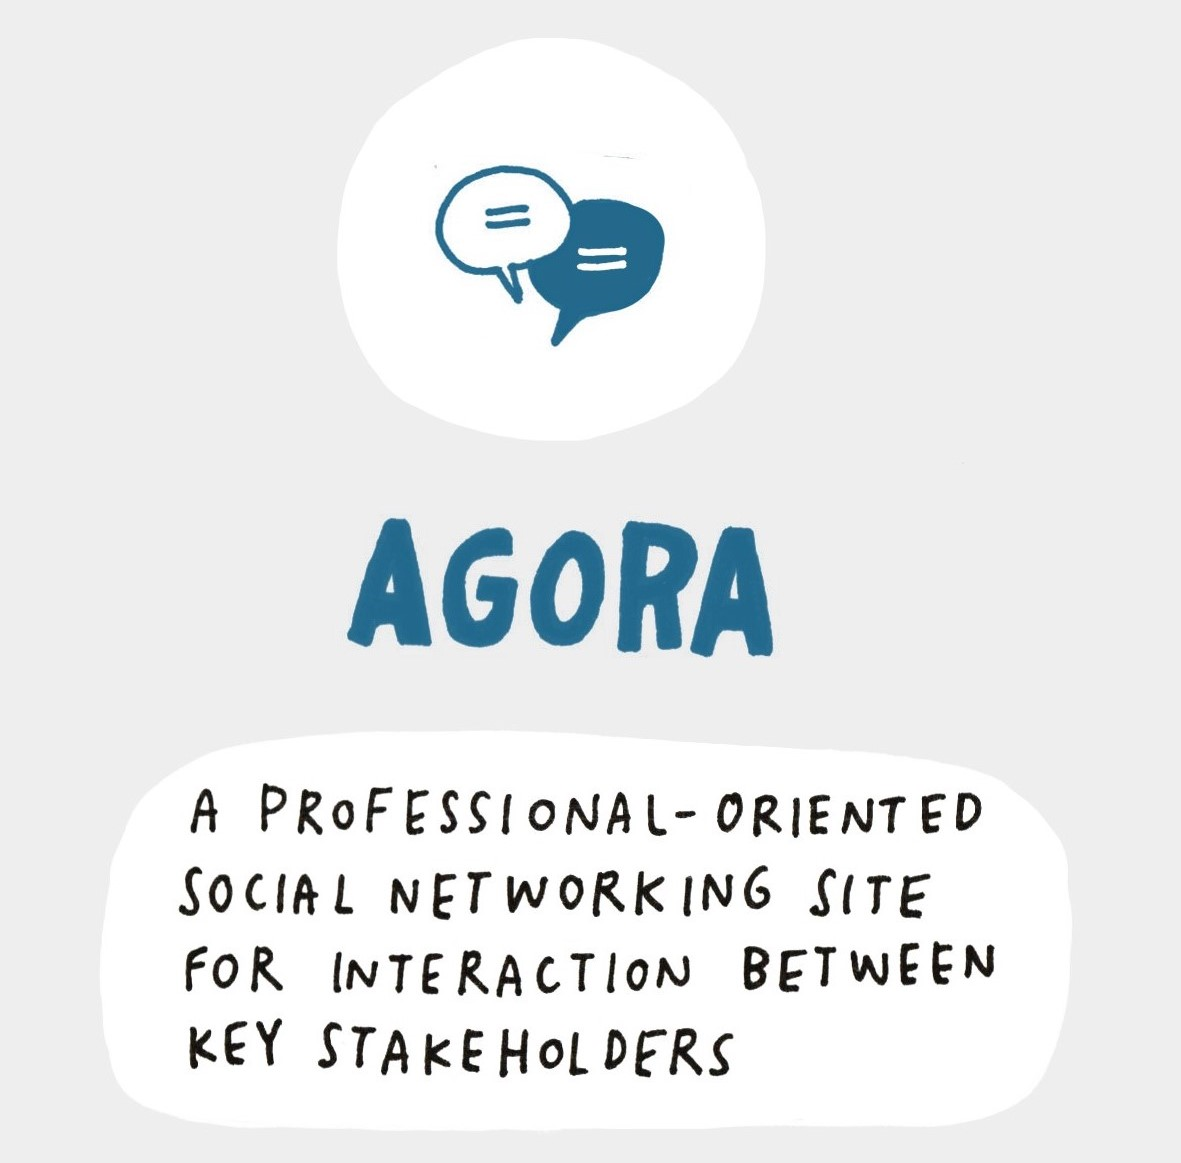 AGORA: A professional-oriented social networking site for interaction between key stakeholders